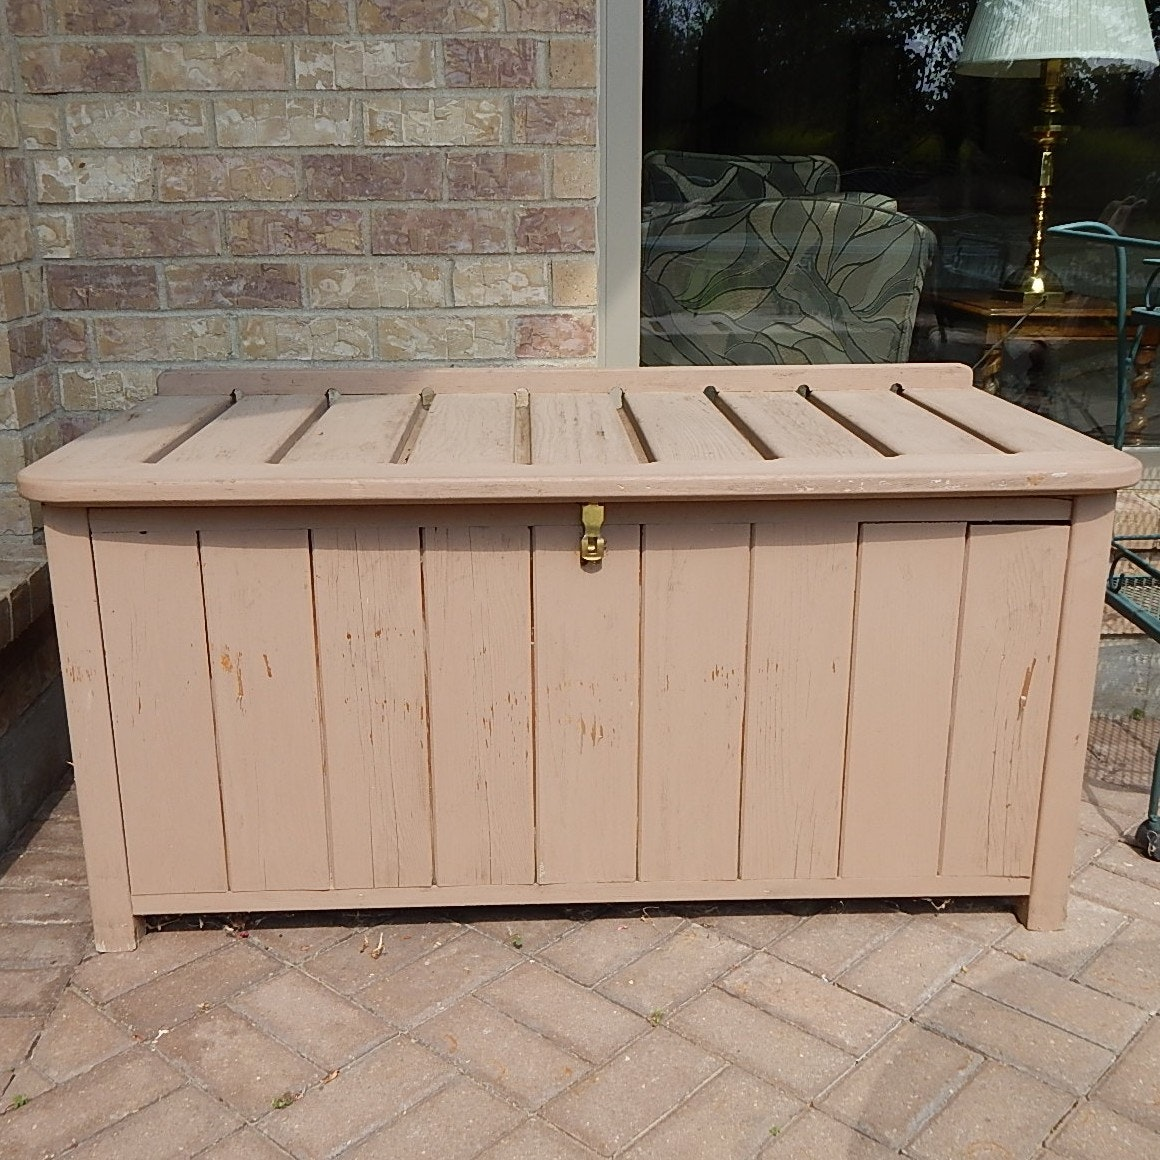 Painted Wood Outdoor Storage Chest